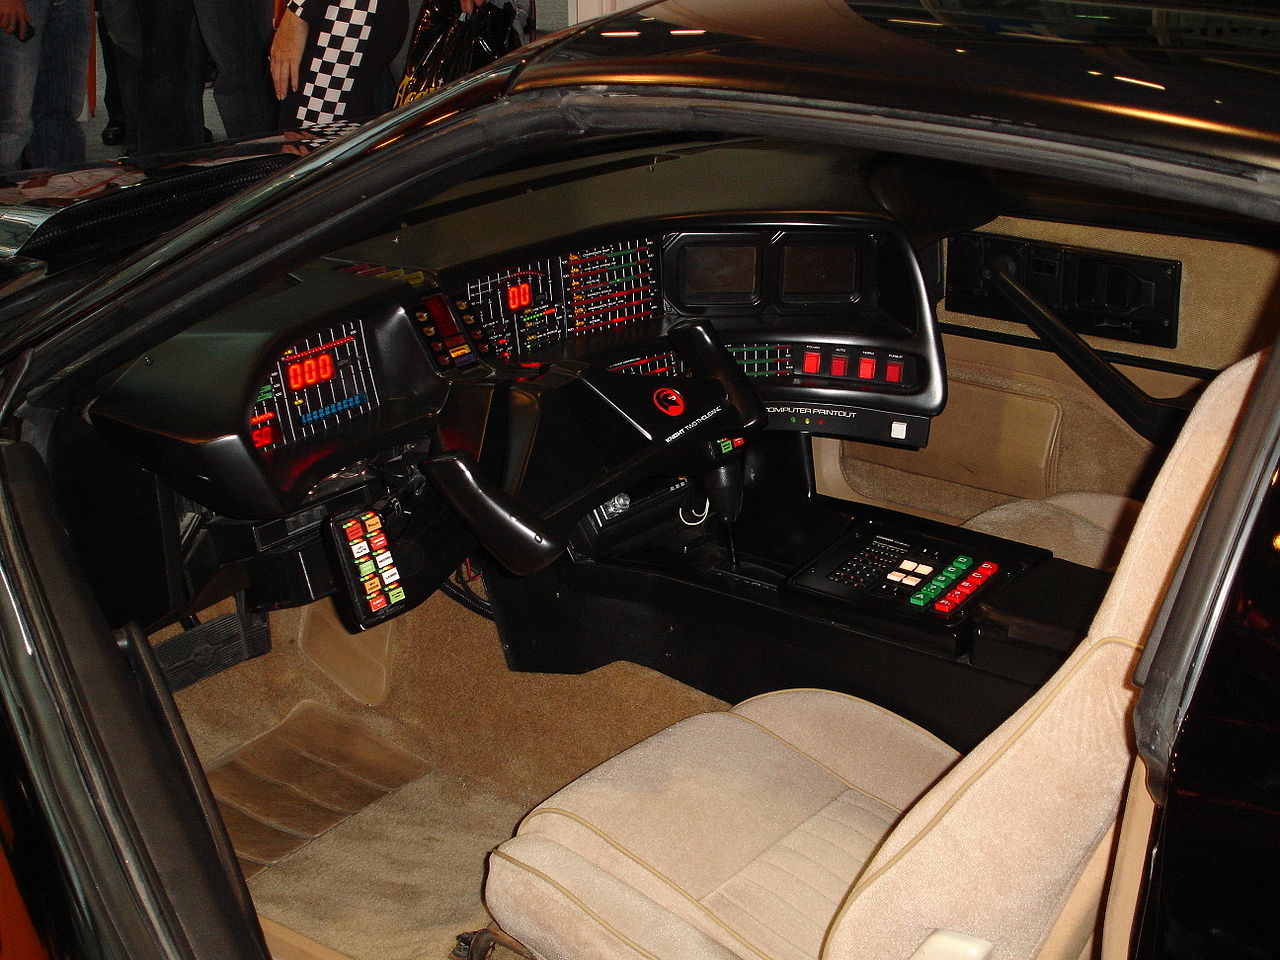 A SUPER MÁQUINA - Interior do KITT, um Pontiac TRansAm modificado